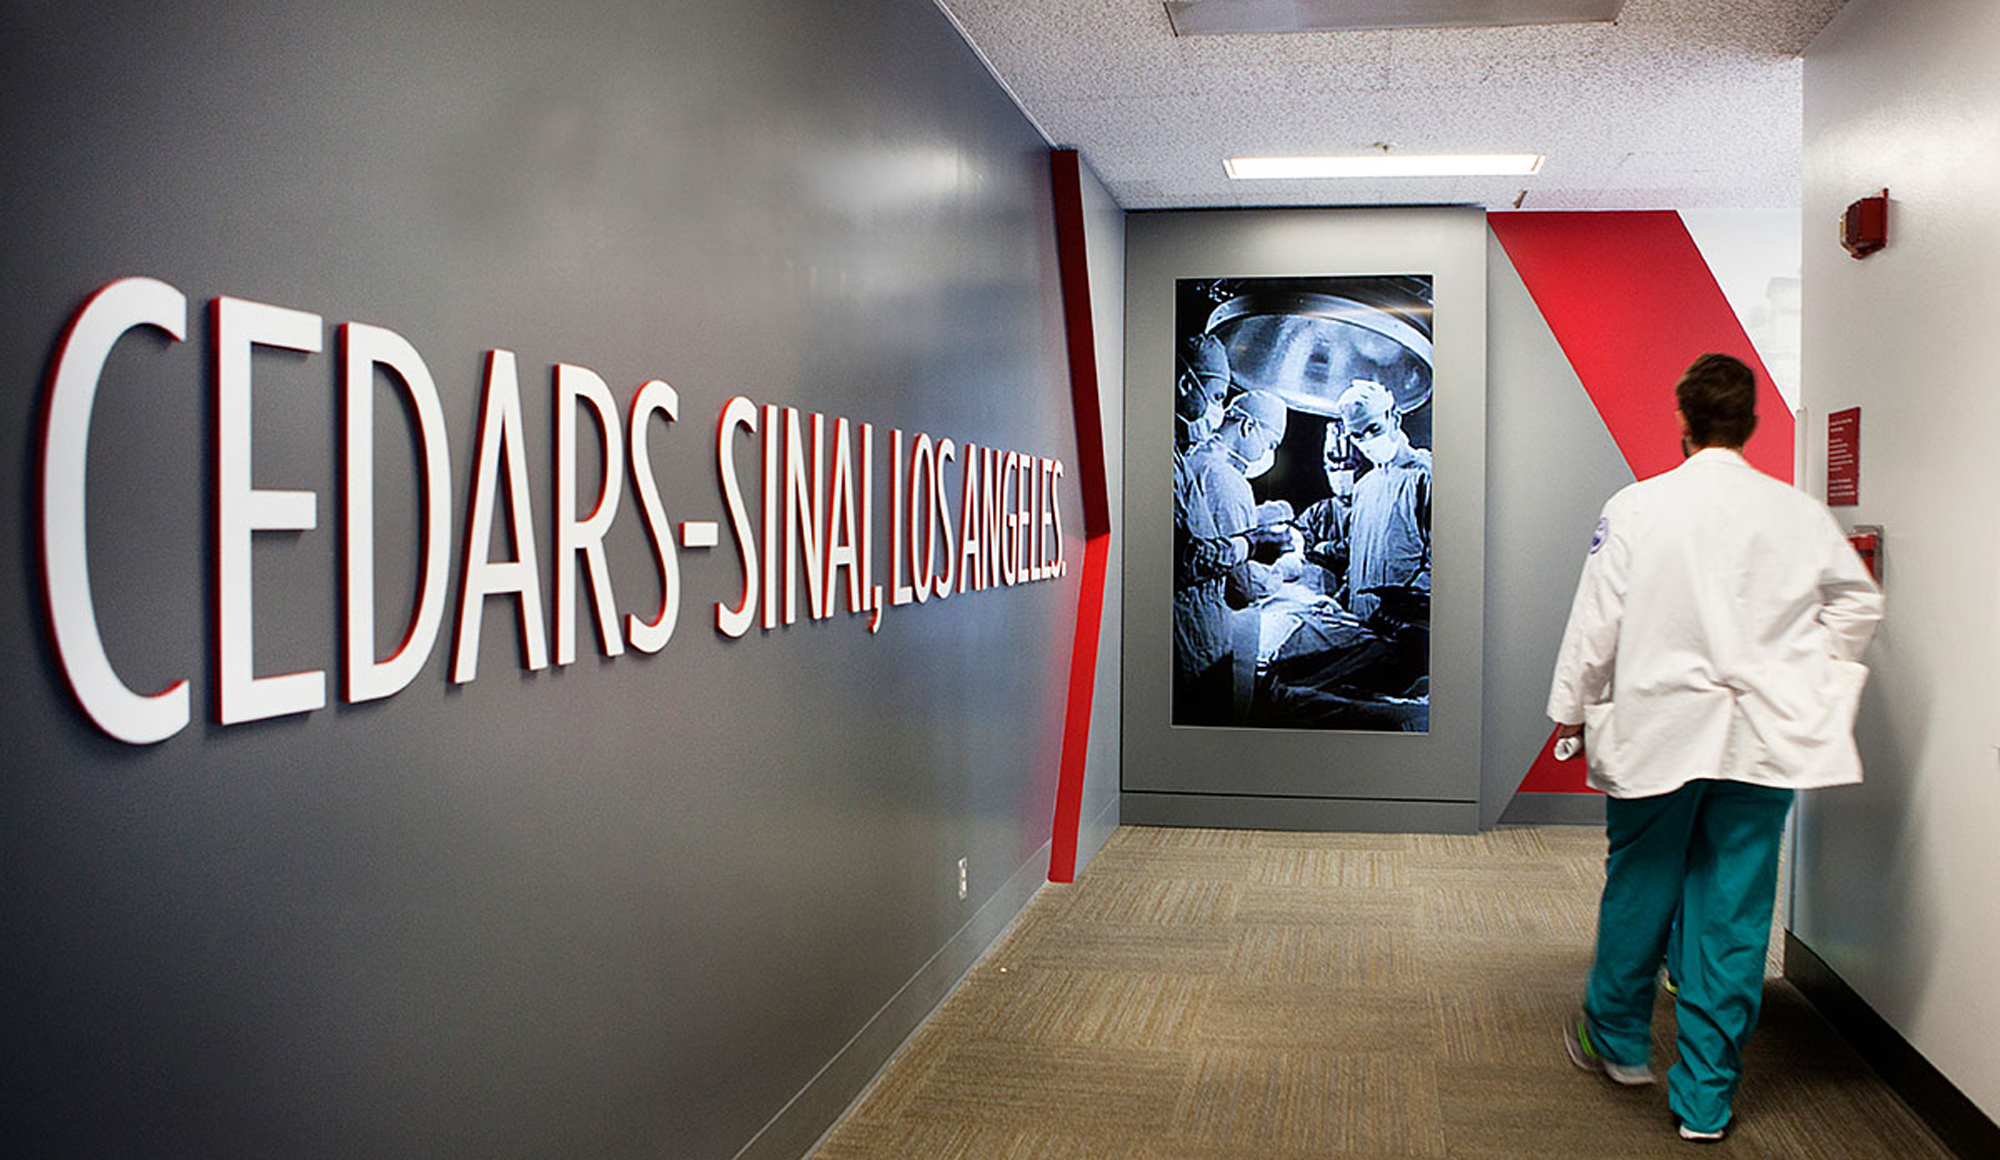 Cedars-Sinai, The Angeles Clinic Renovation and Expansion